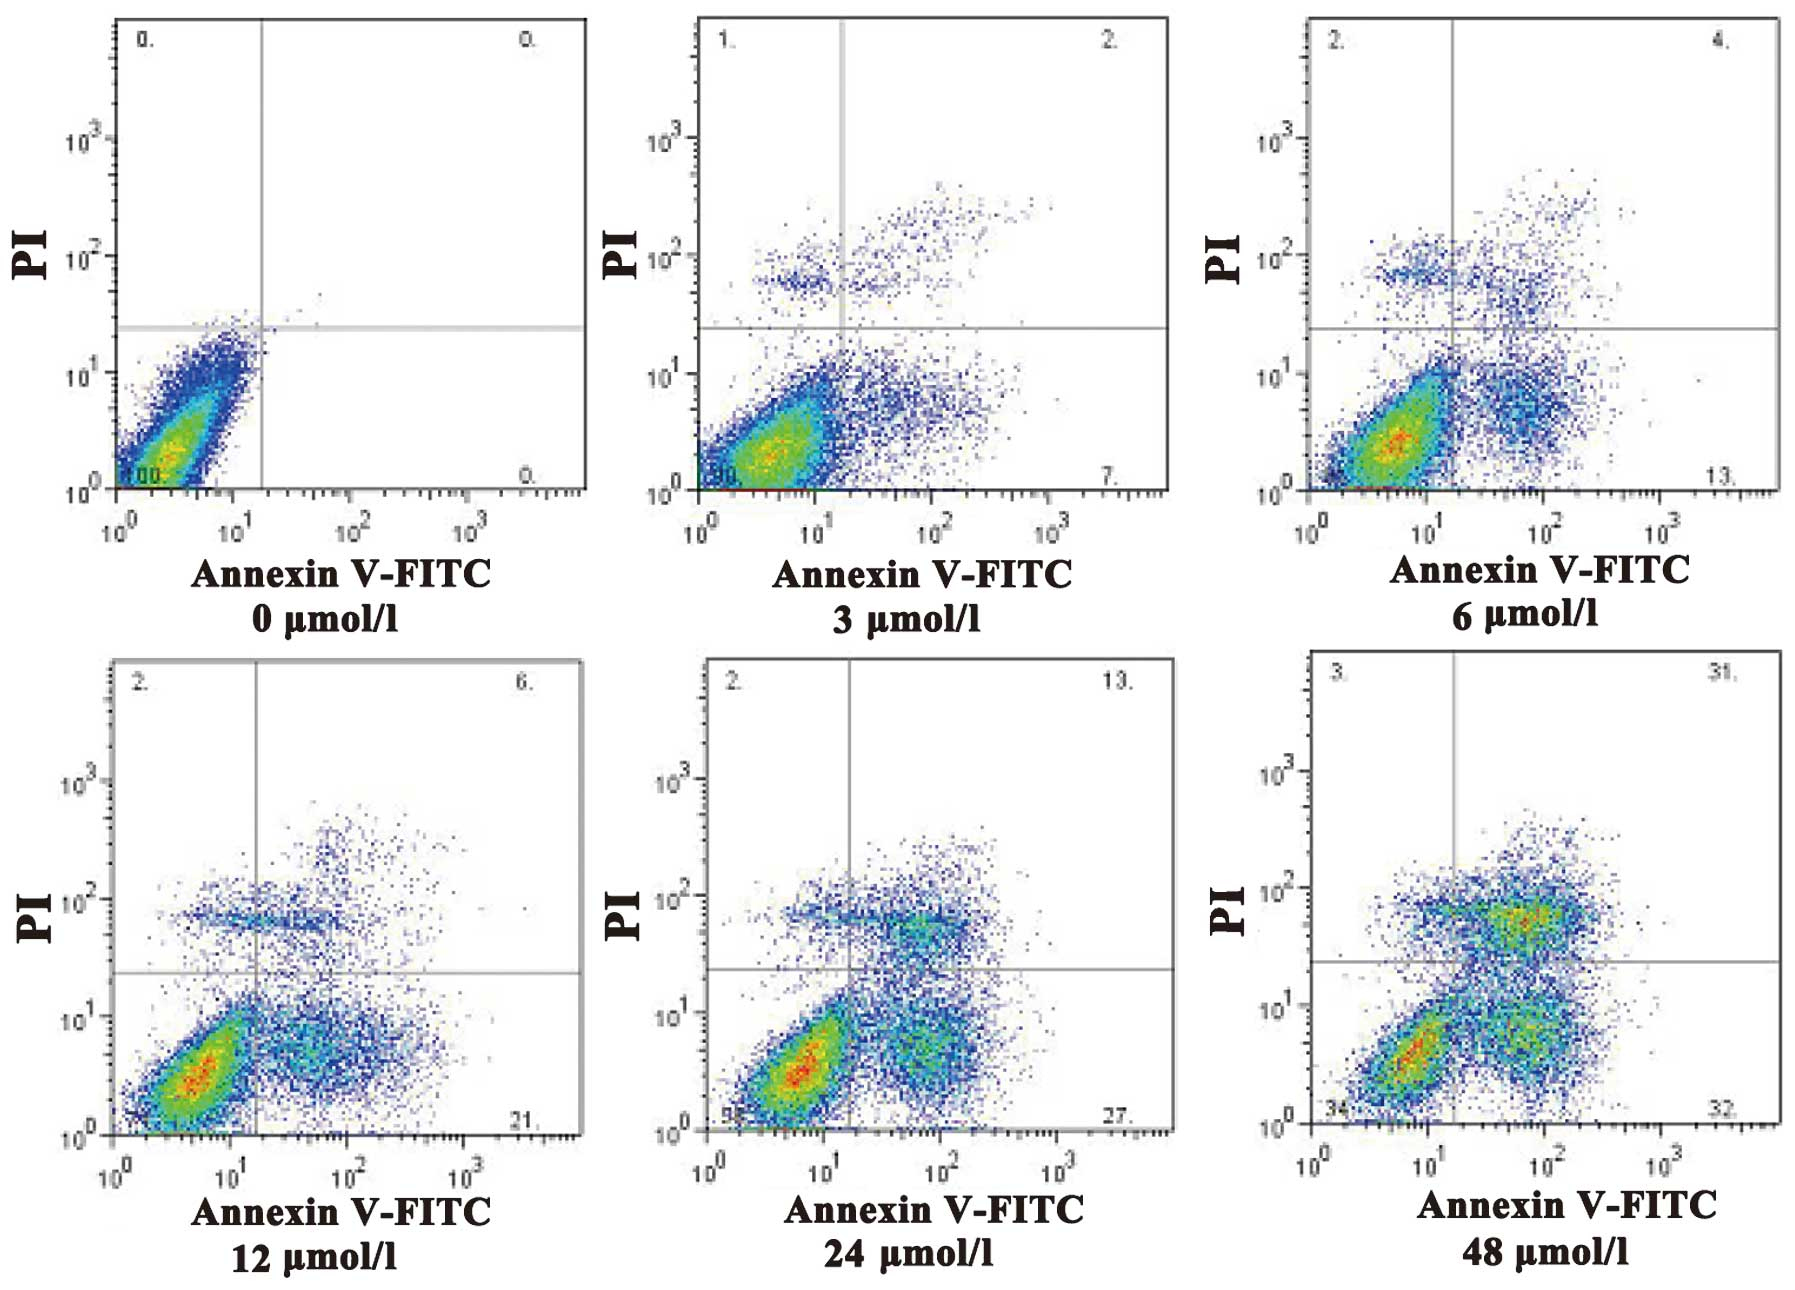 Question: The data show the flow cytometry results when gastric cancer  cells were treated with a chemical c.